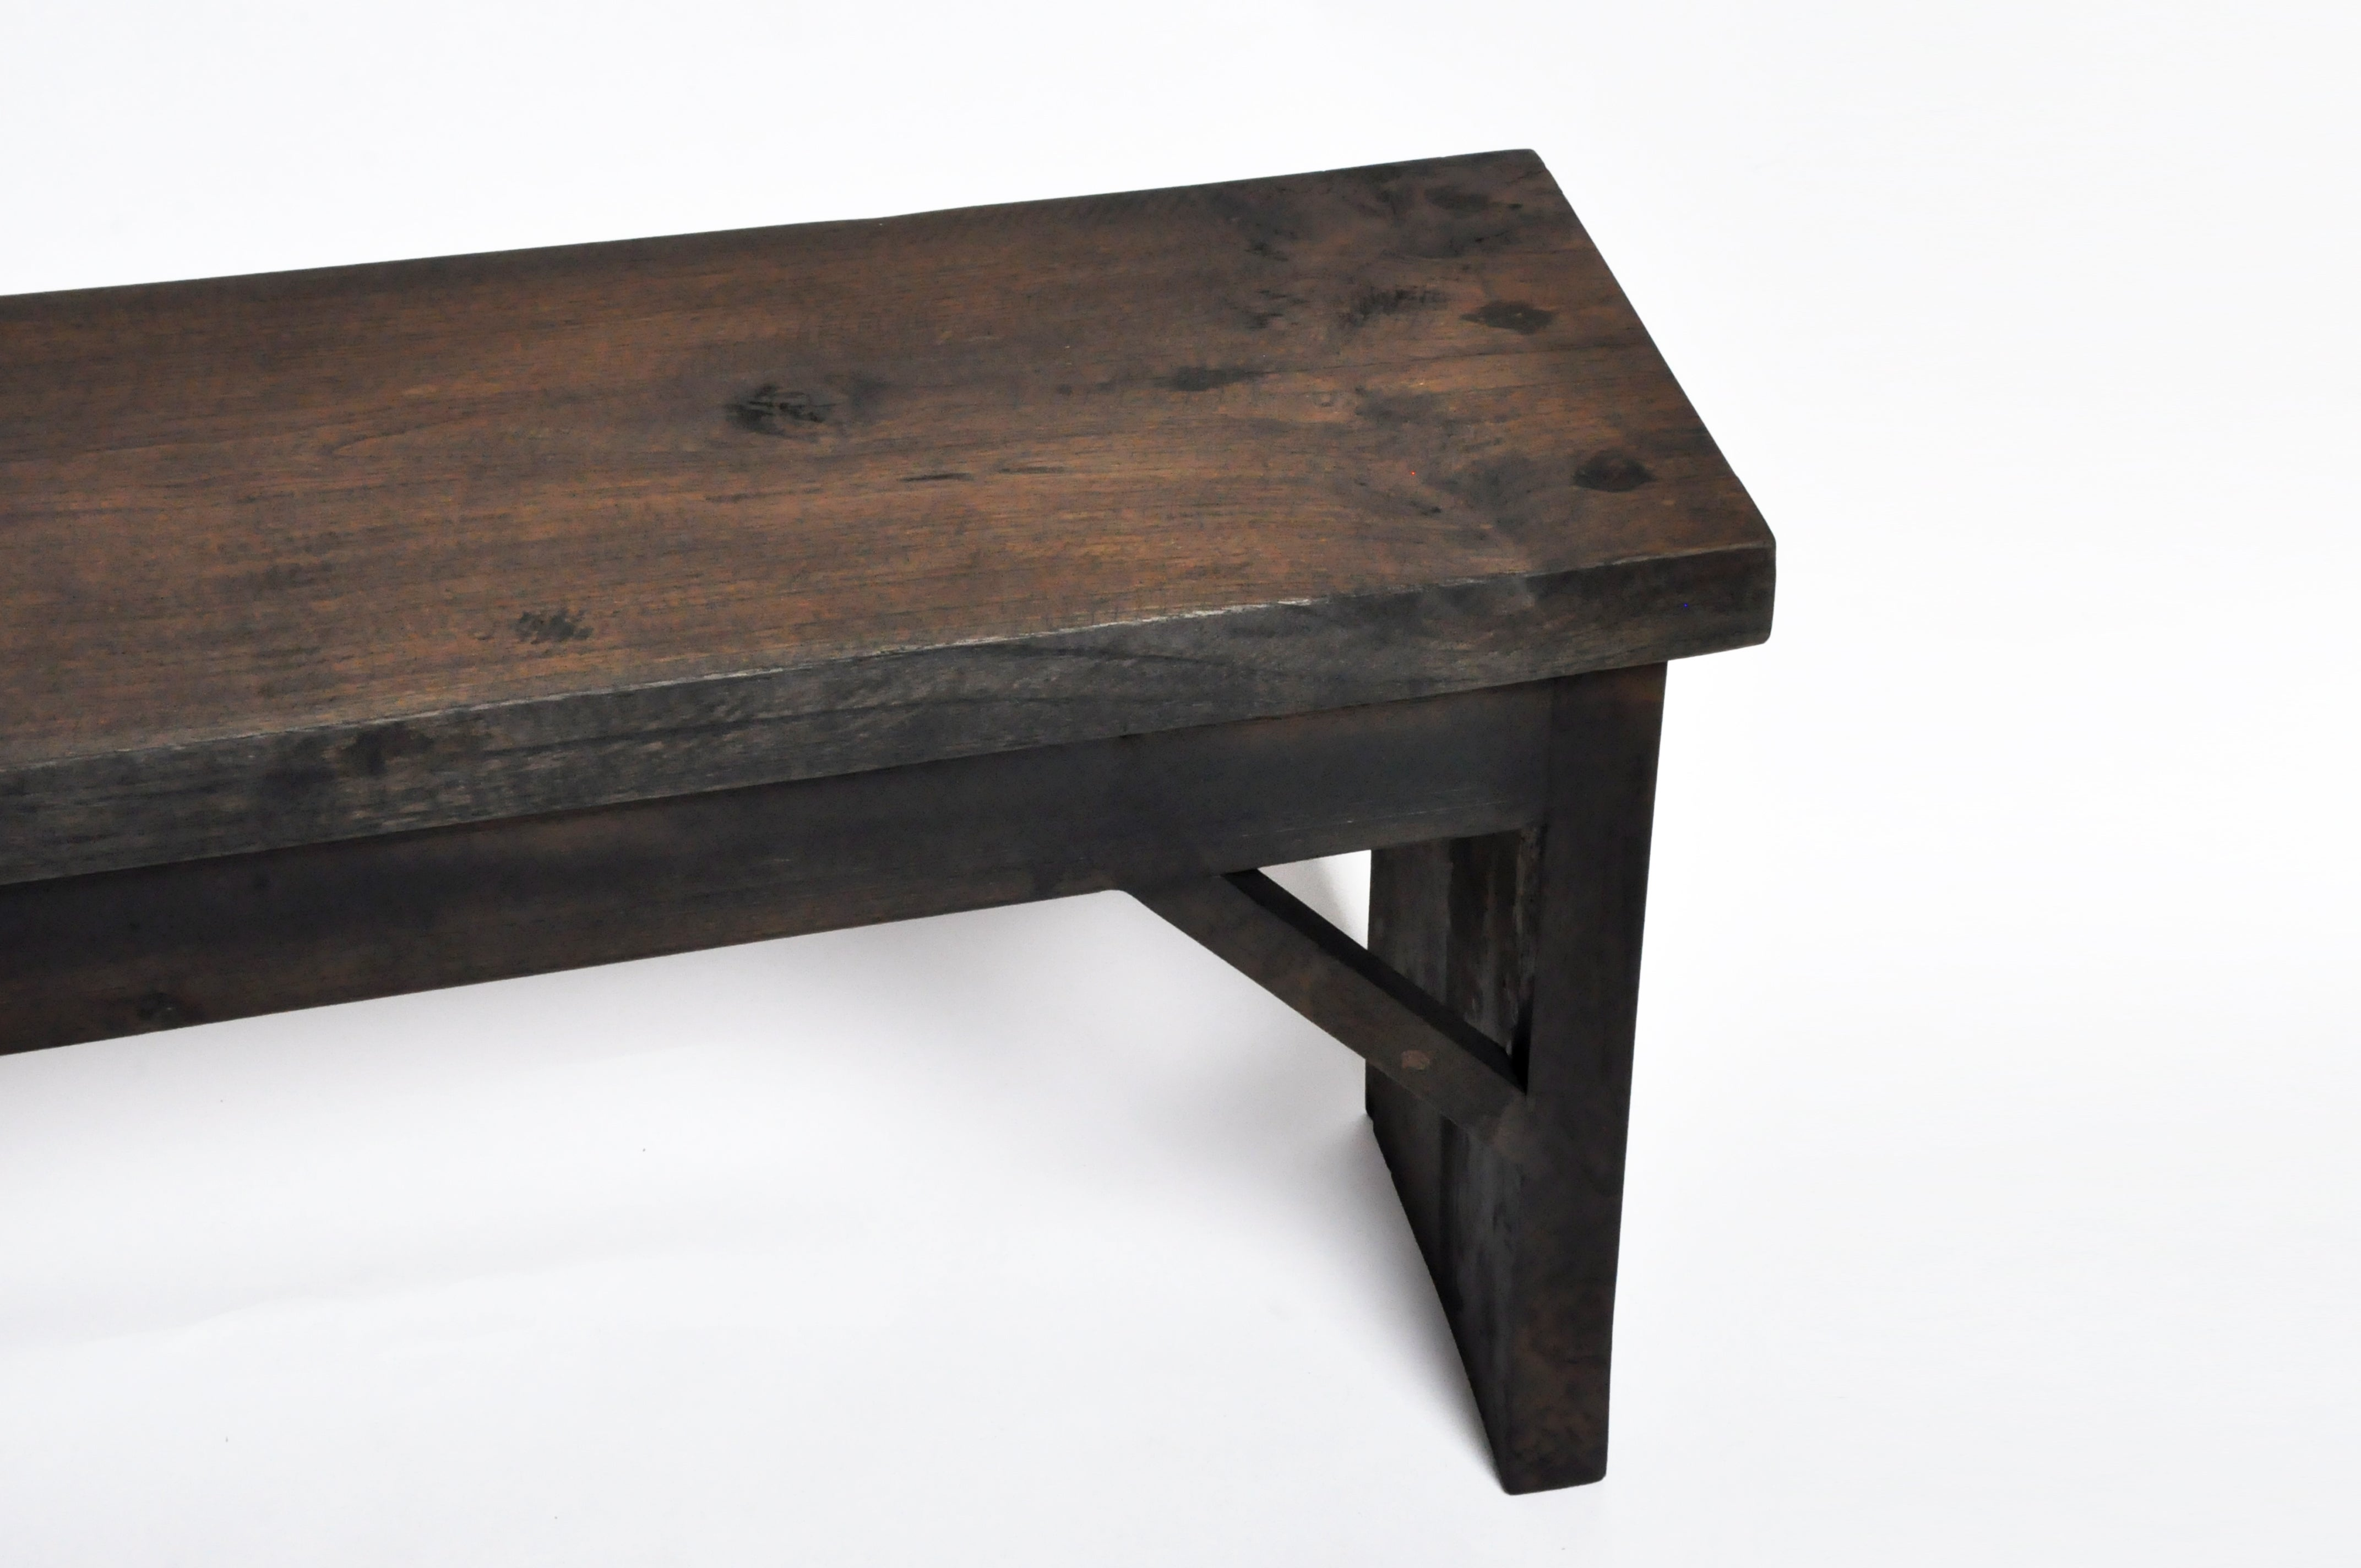 Indonesische Teakholzbank Reclaimed Teak Wood Bench